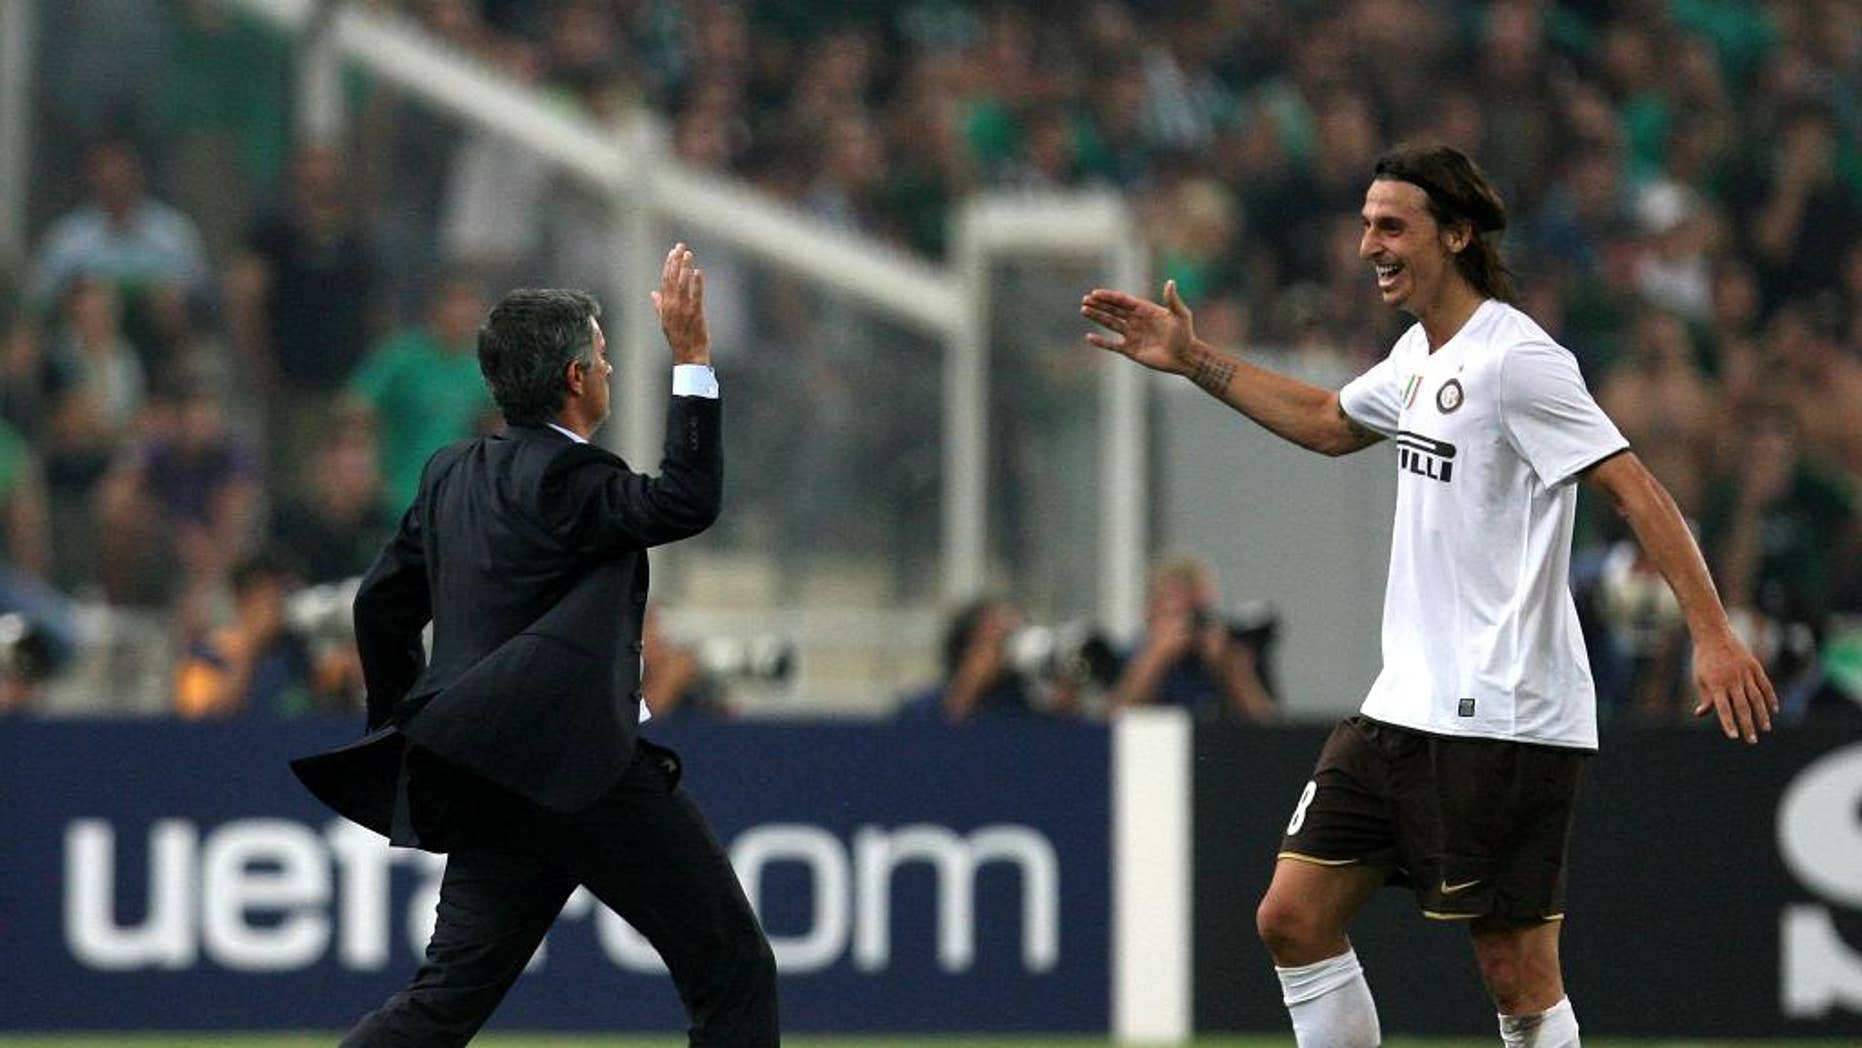 FILE - In this Tuesday, Sept. 16, 2008 file photo, Inter Milan coach Jose Mourinho congratulates Zlatan Ibrahimovic, right, after scoring against Panathinaikos, during a Champions League soccer match at the Olympic stadium of Athens. Zlatan Ibrahimovic said on his official social media accounts Wednesday, June 30, 2016 that his next club will be Manchester United. (AP Photo/Thanassis Stavrakis, File)